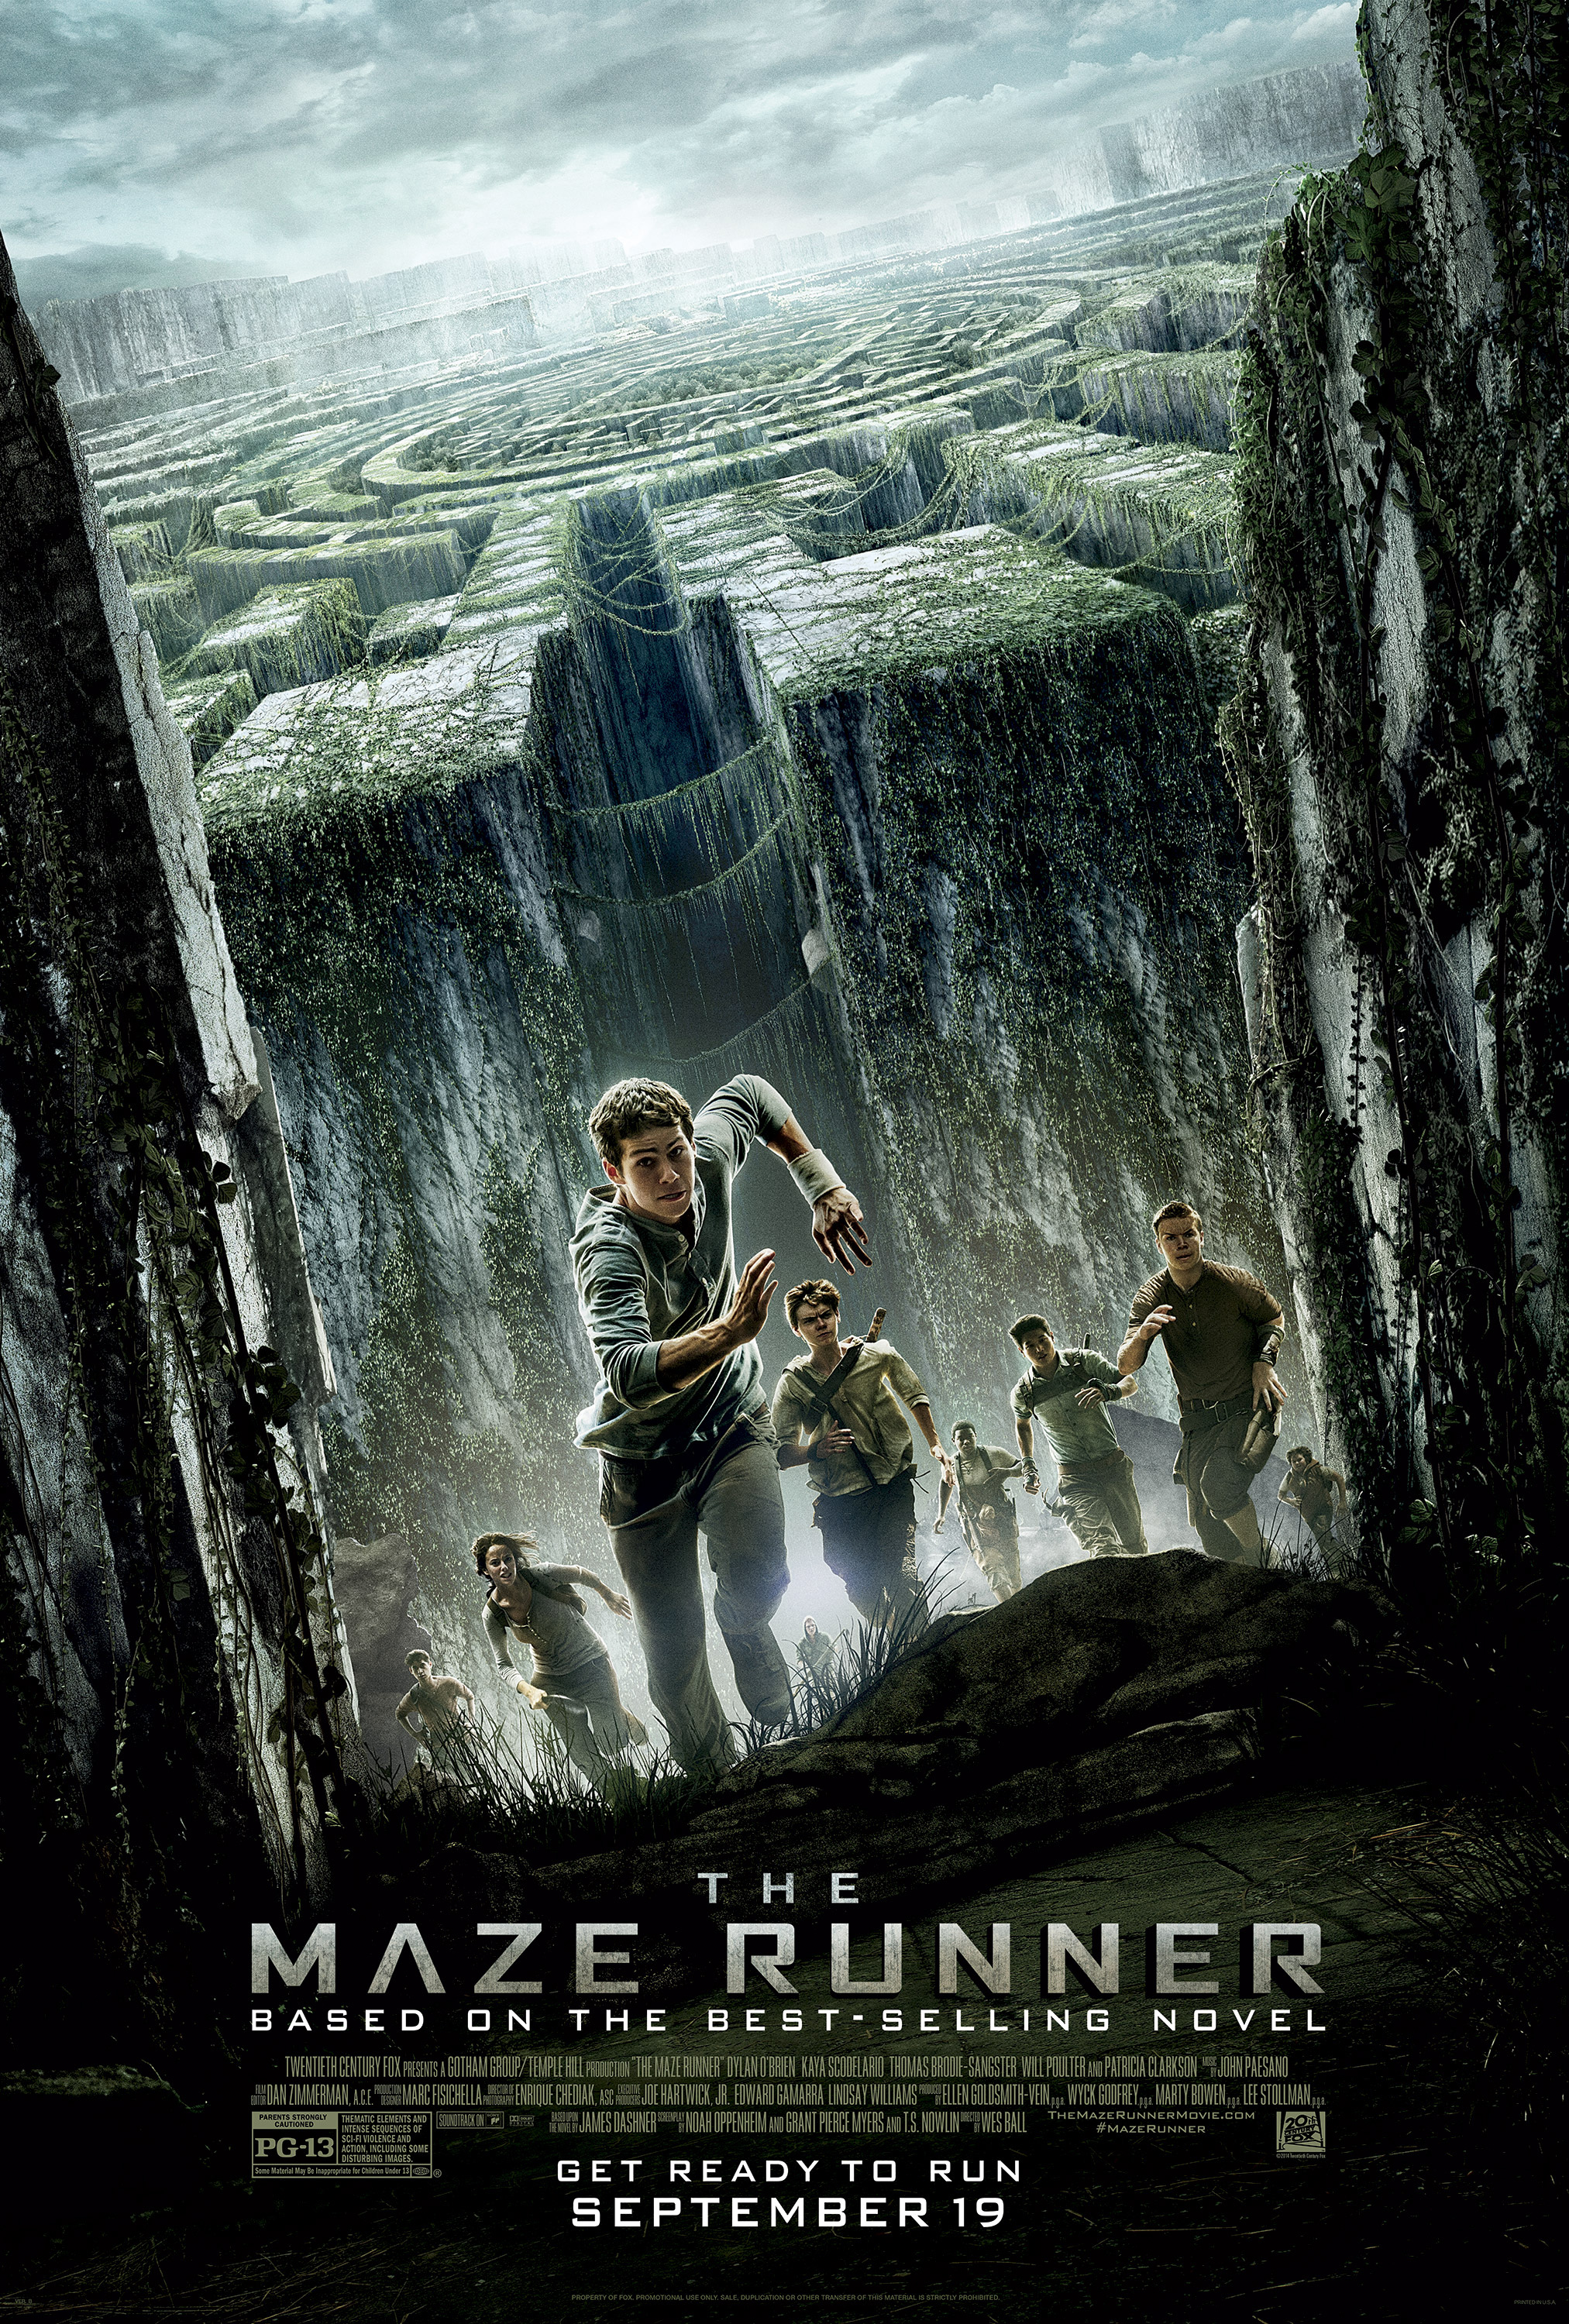 The Maze Runner Poster